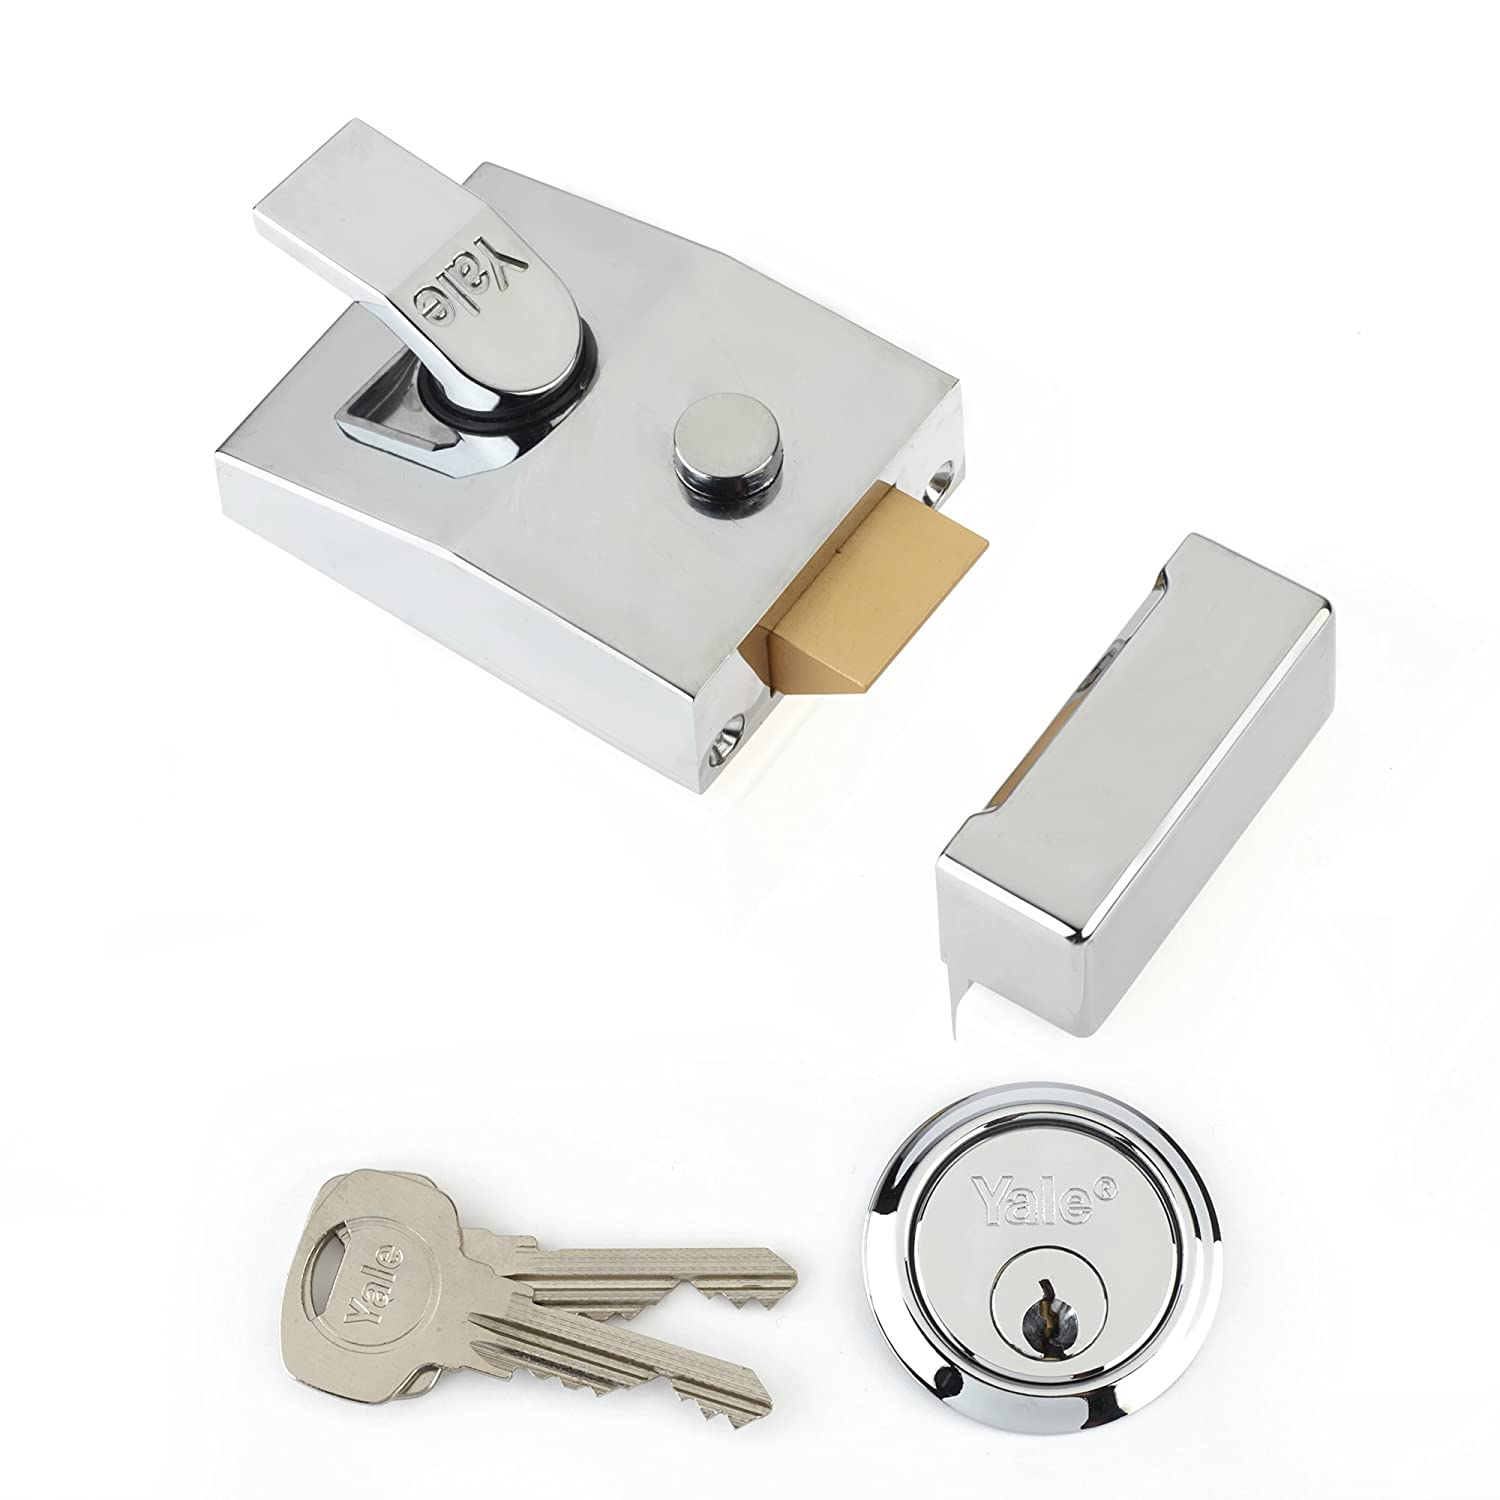 Yale Locks P89 Deadlock Nightlatch DMG Brass Cylinder 60 mm Backset Visi Pack YALP89DMGPB